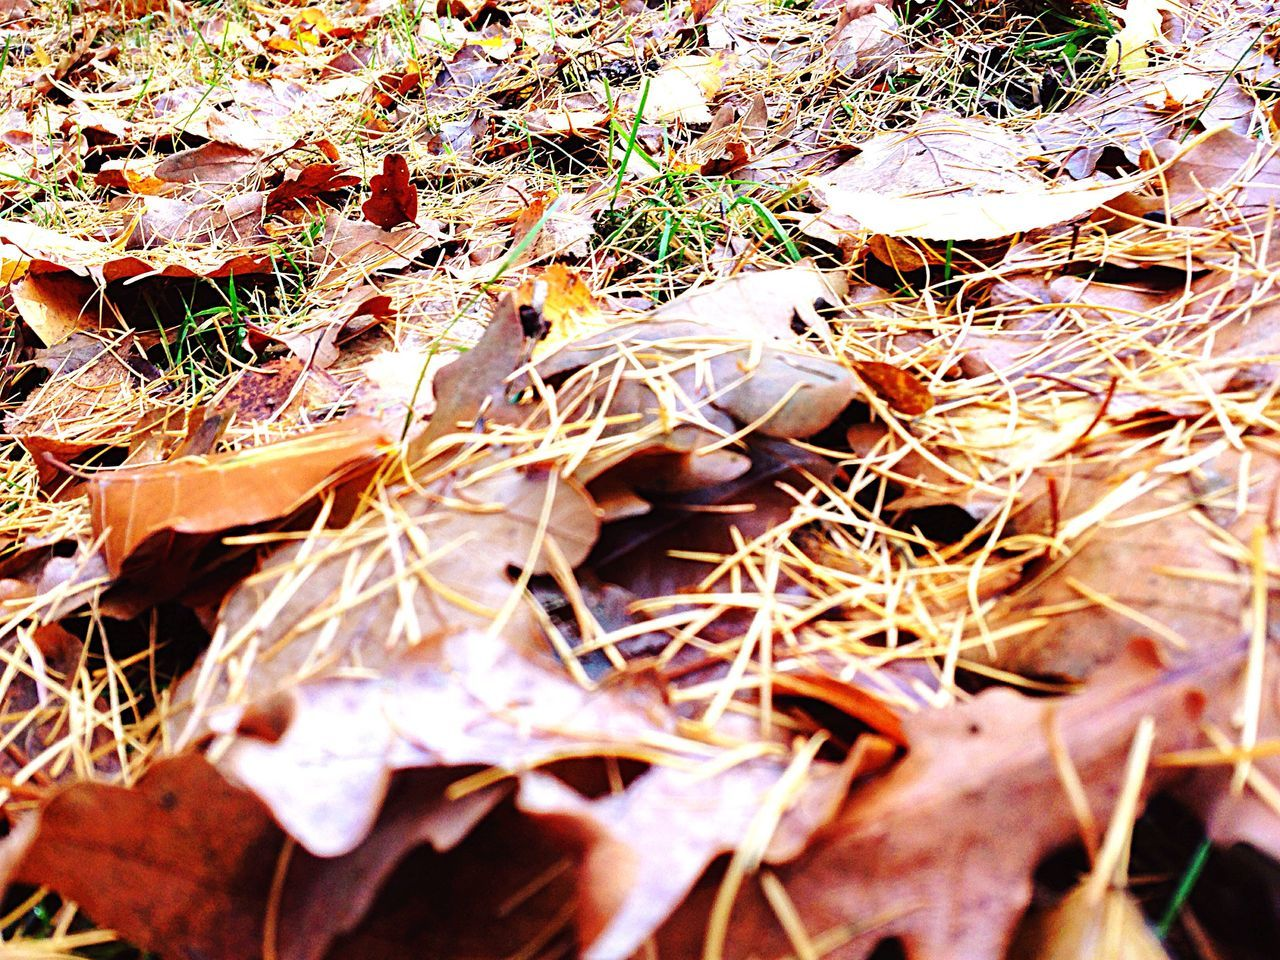 dry, nature, leaf, autumn, change, outdoors, no people, day, close-up